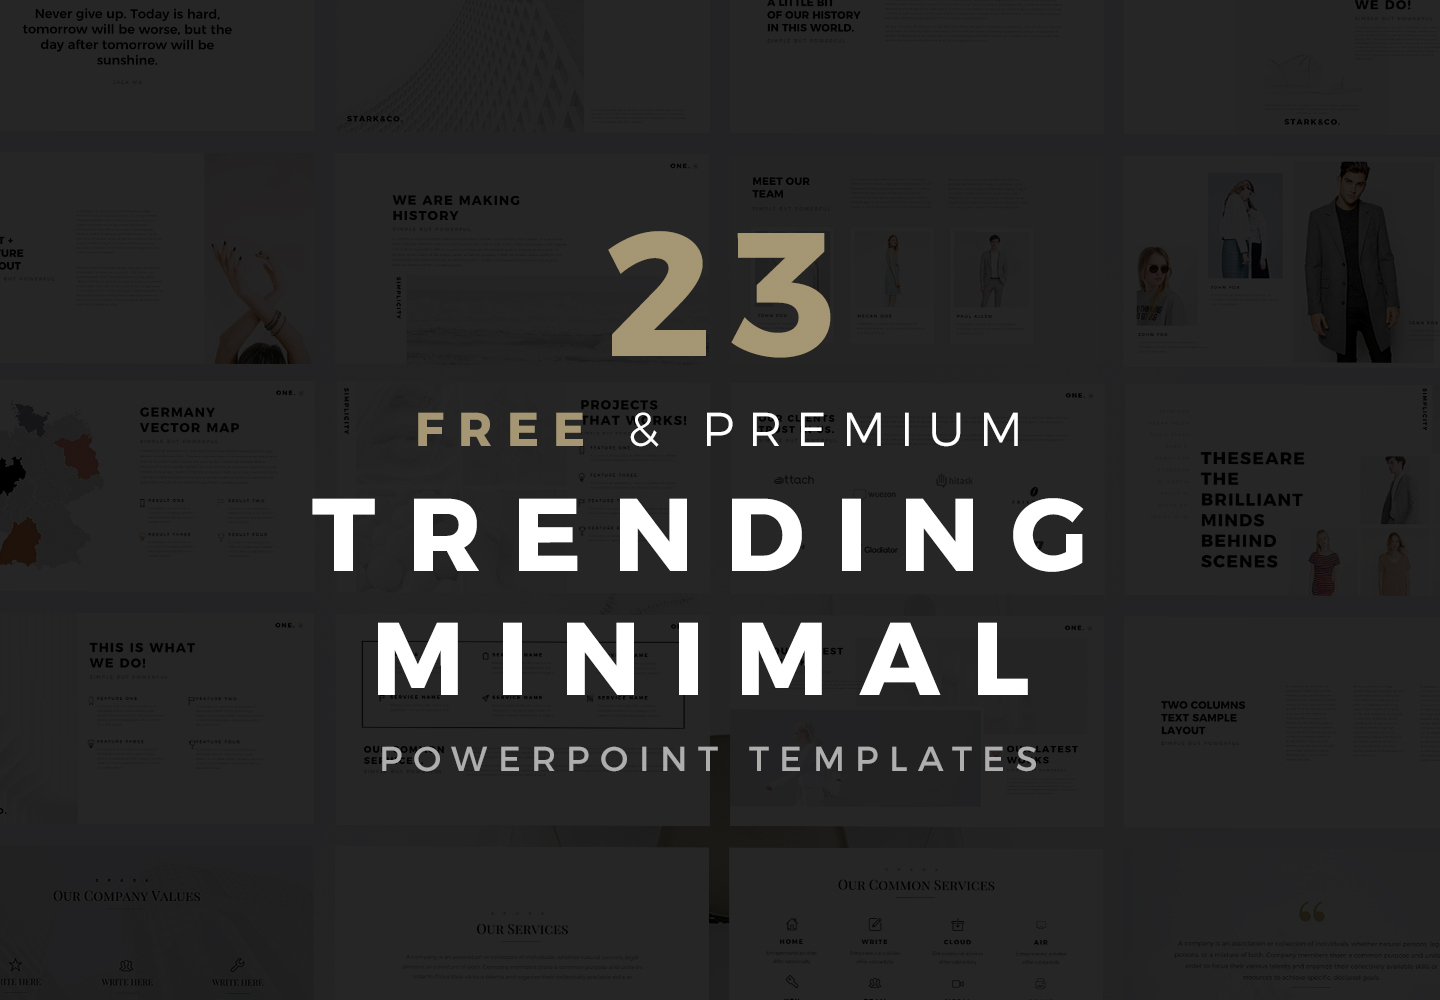 Minimal PowerPoint Templaets